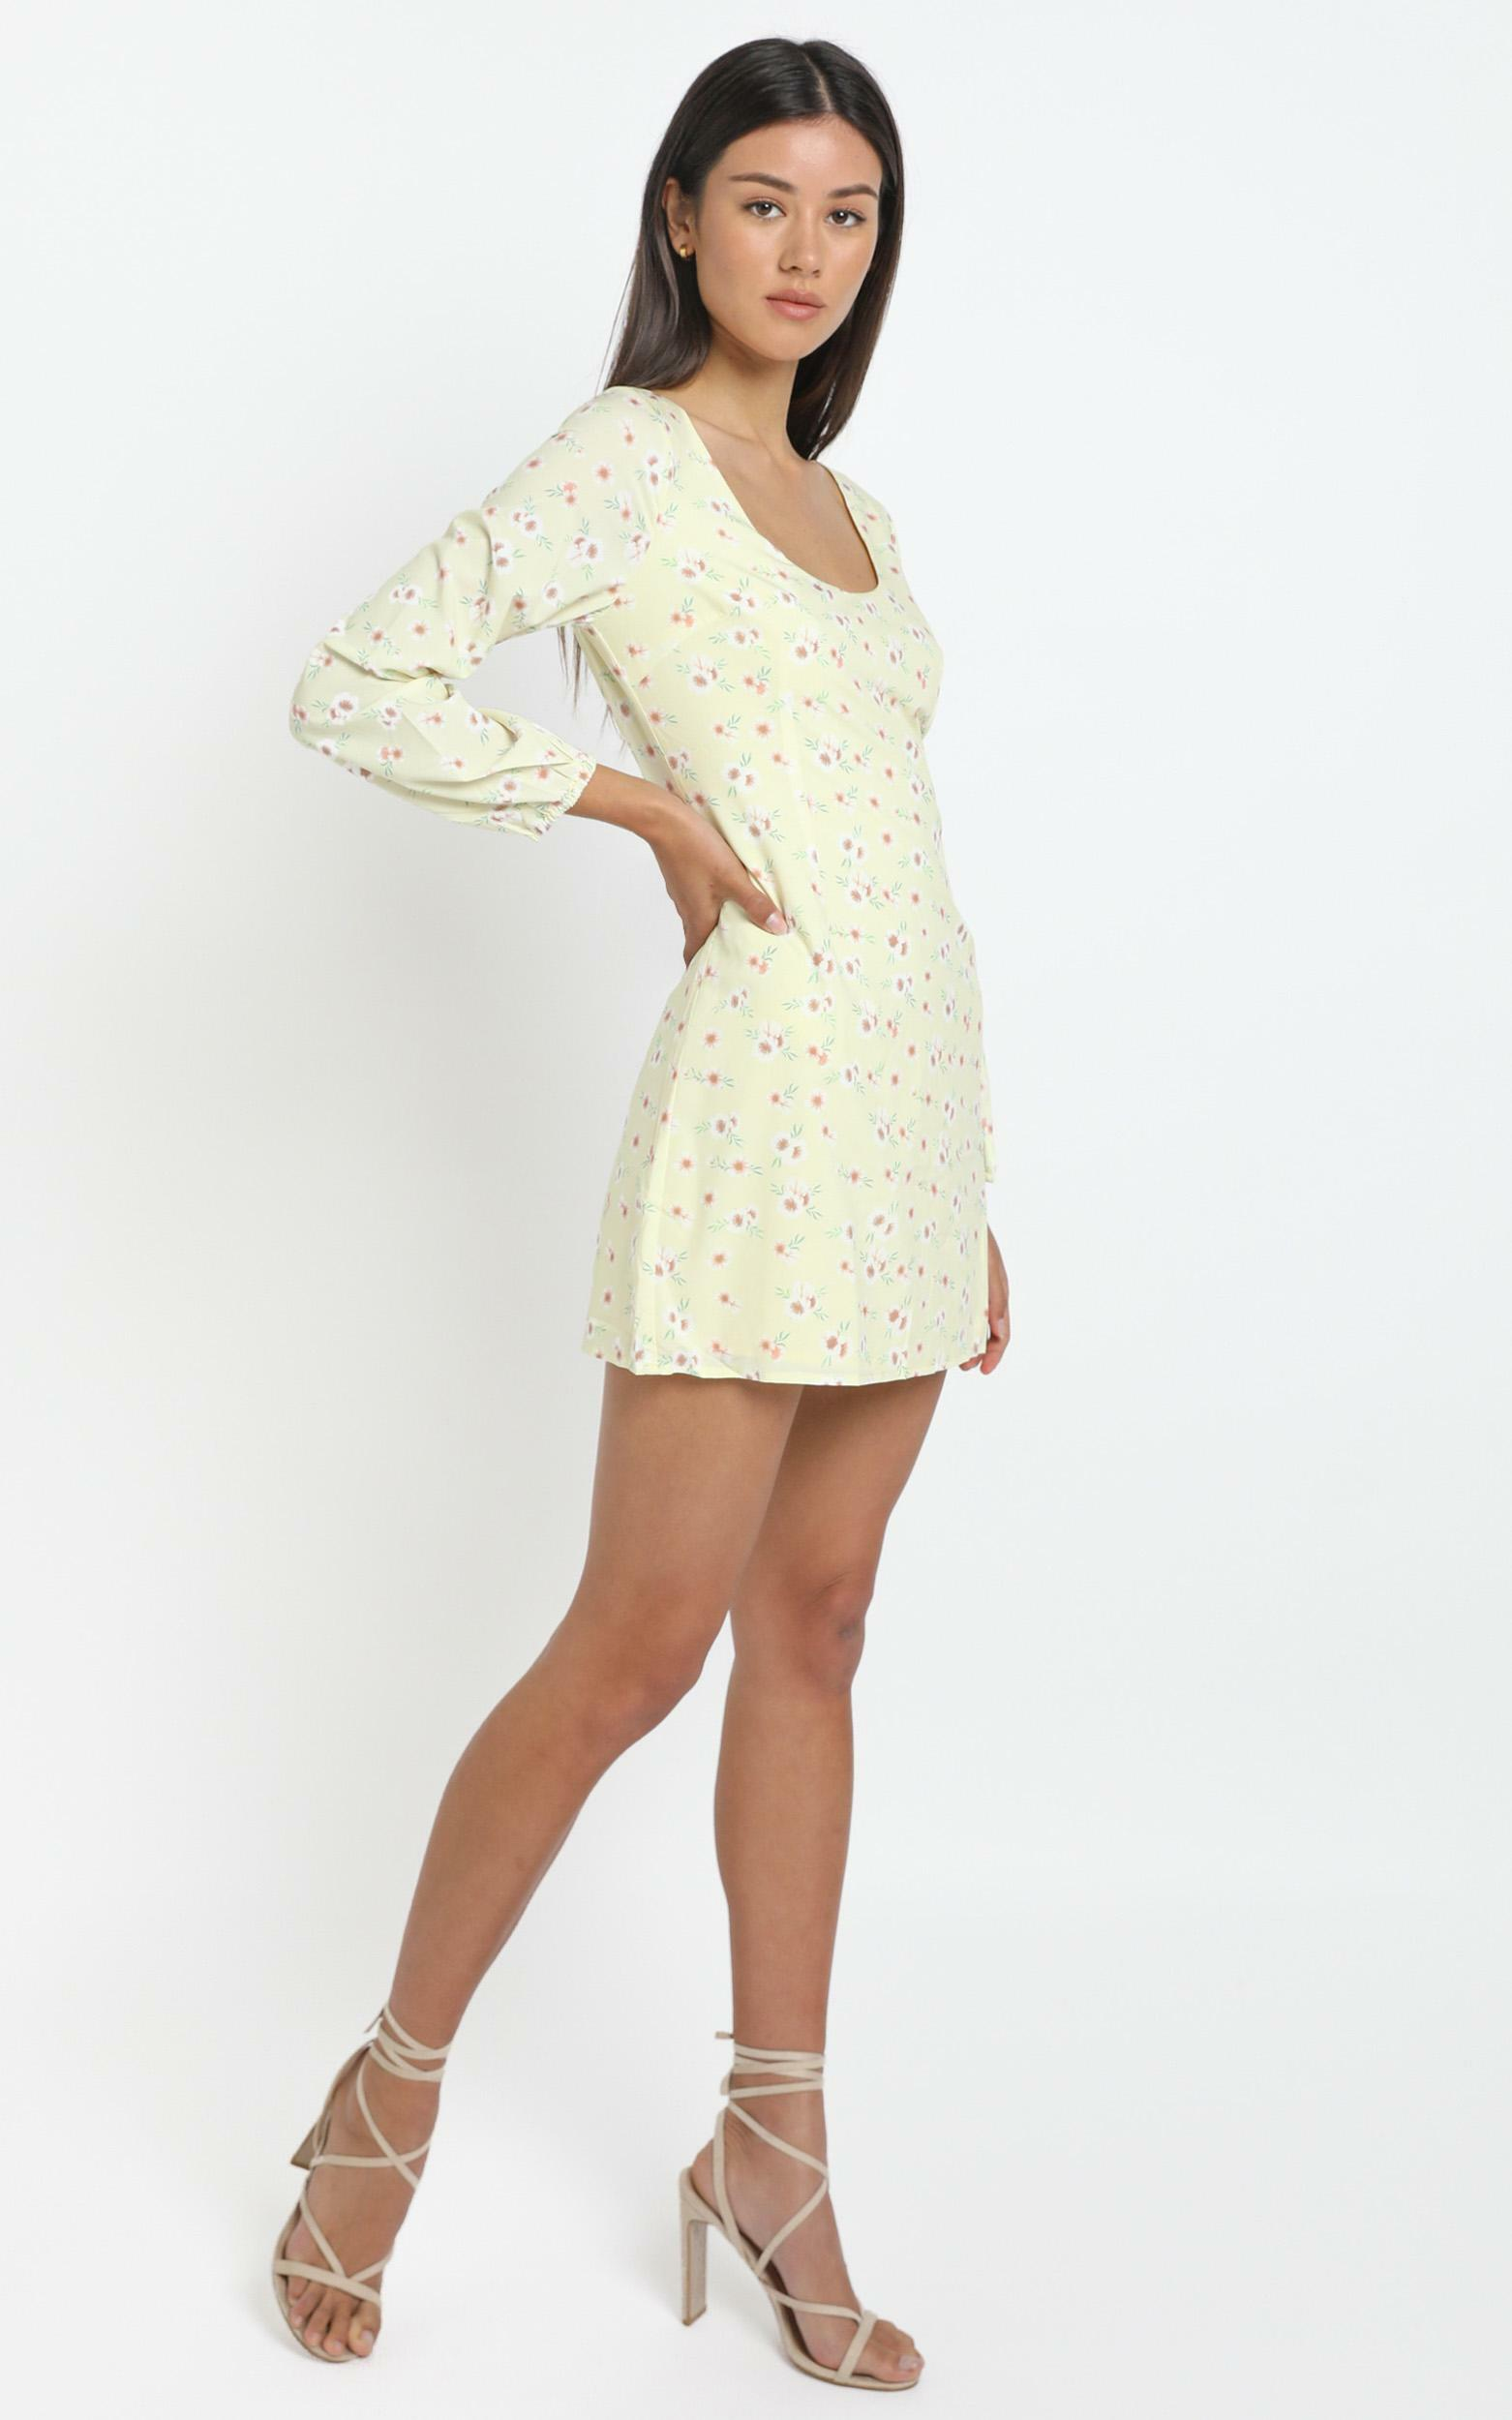 Desert Romance Mini Dress in Yellow Floral - 14 (XL), Yellow, hi-res image number null